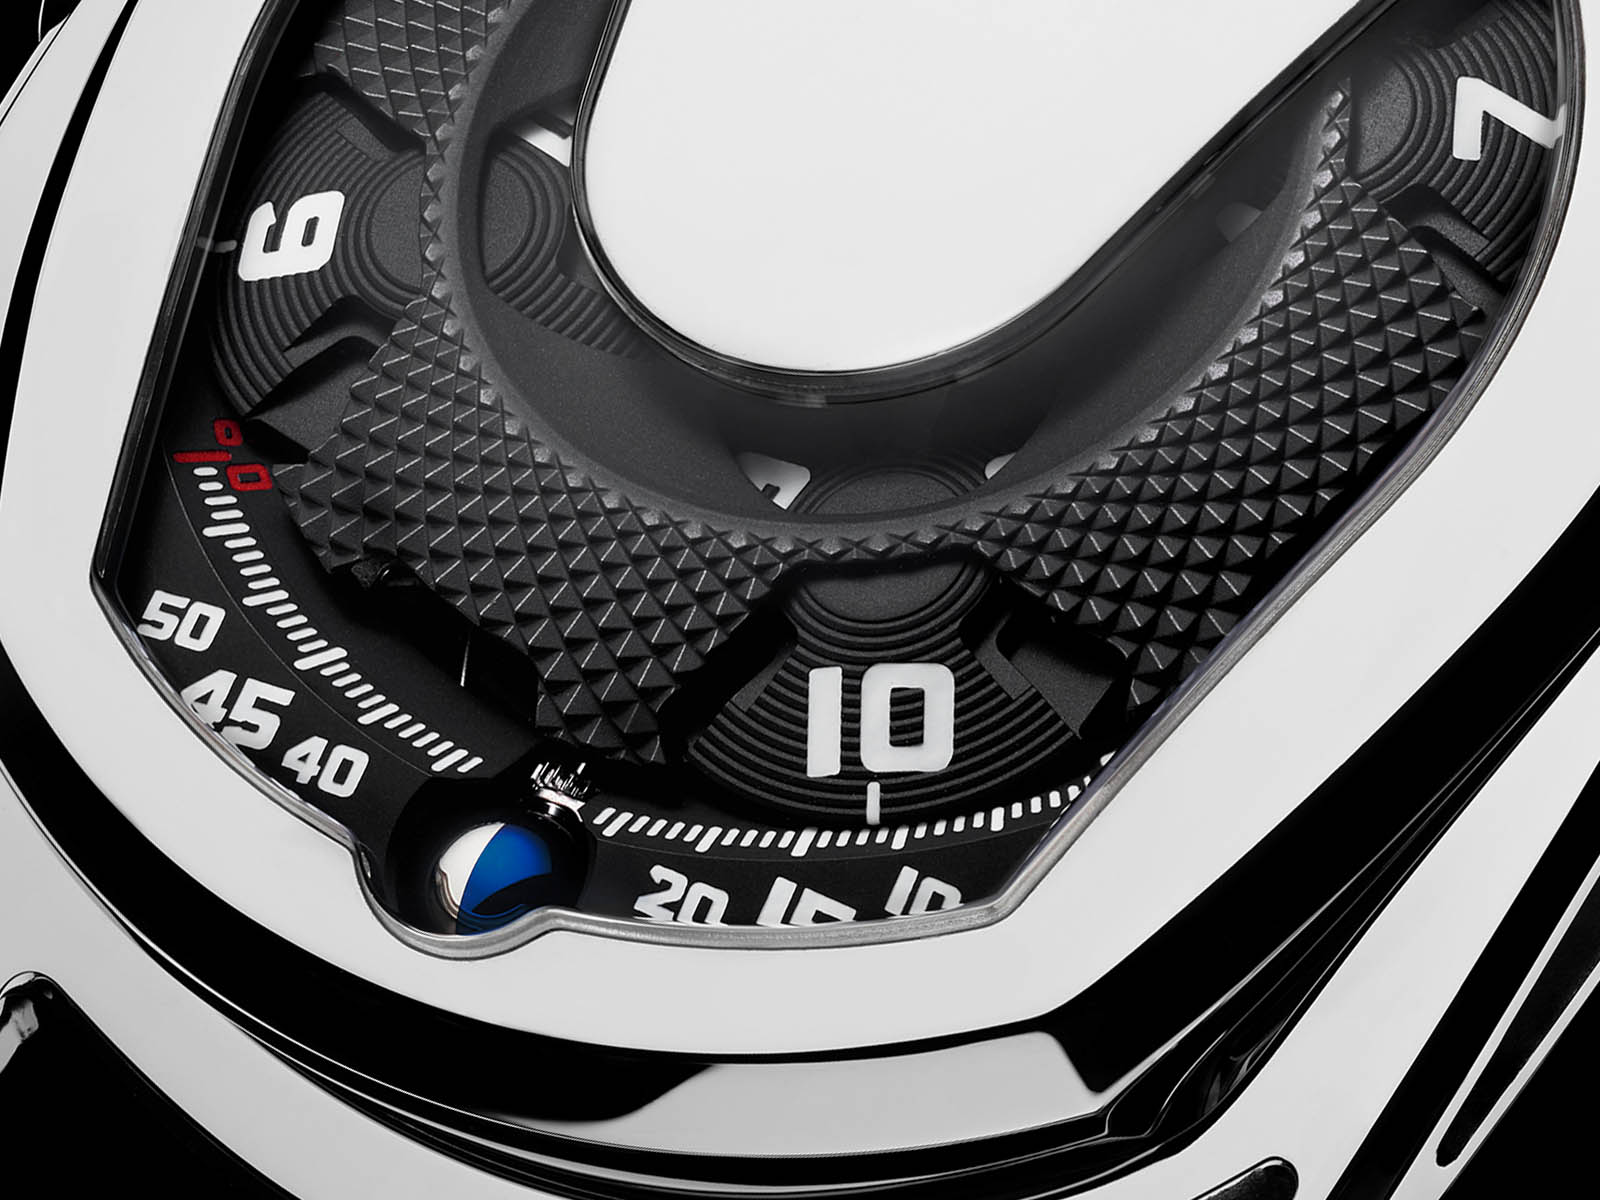 de-bethune-urwerk-only-watch-2019-5.jpg